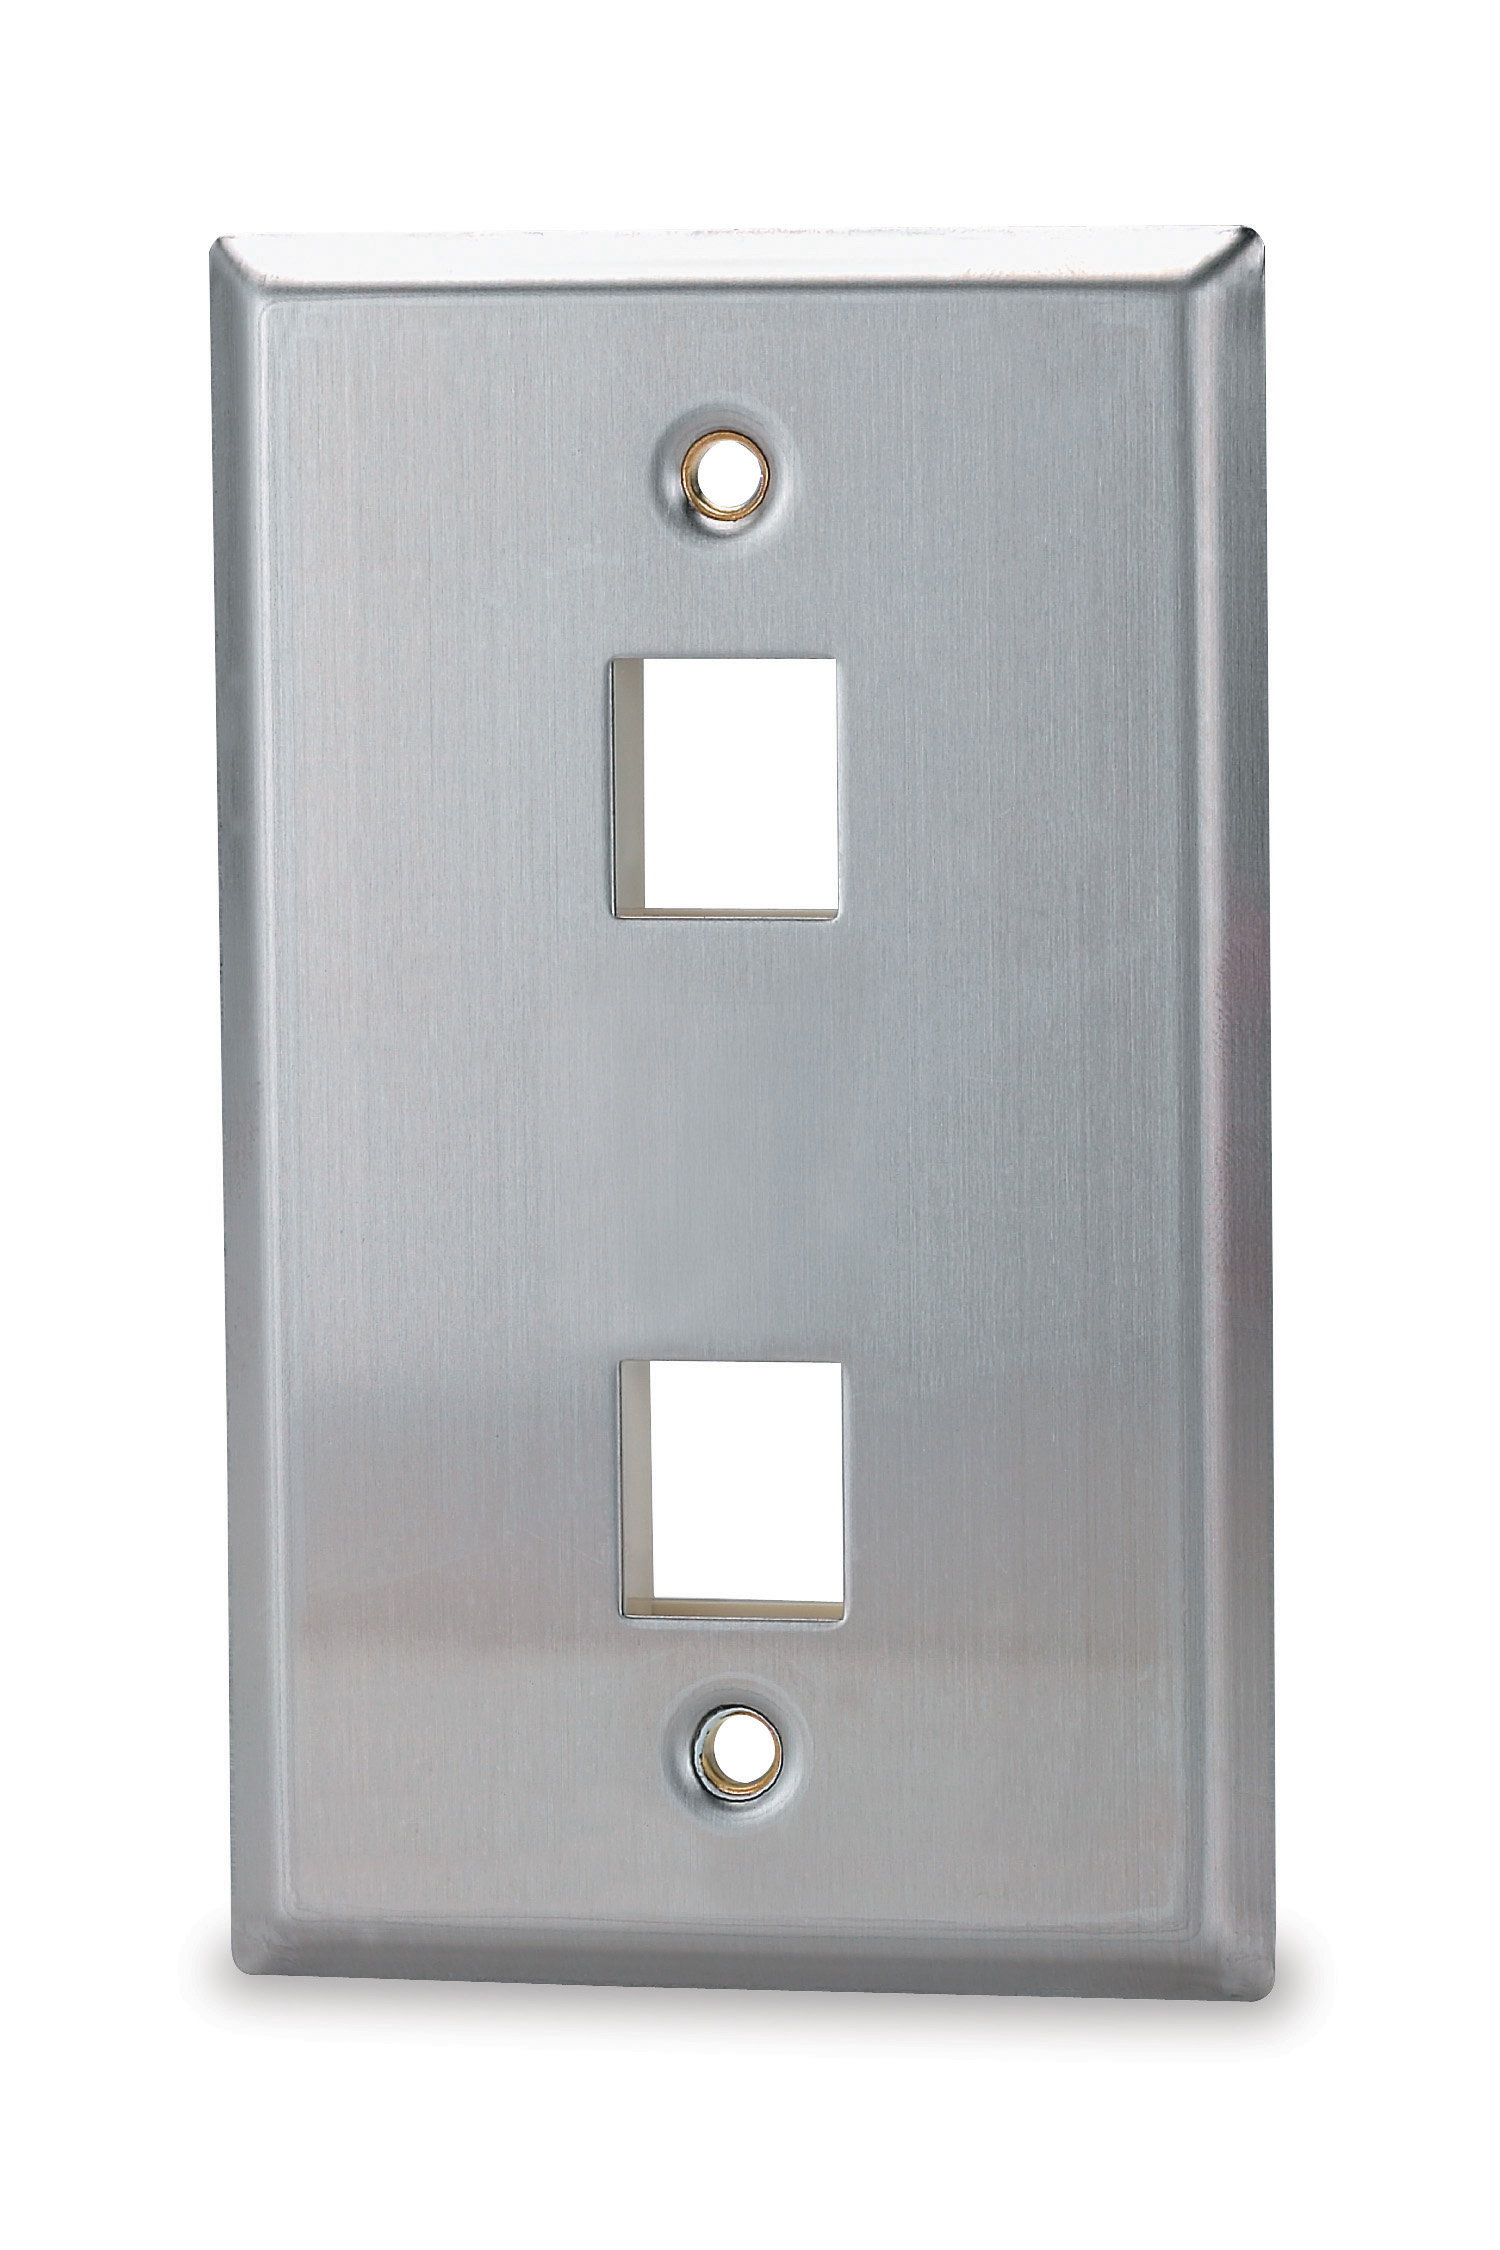 SGM SSKF-2 SGM FACE PLATE 2-PORT STAINLESS STEEL